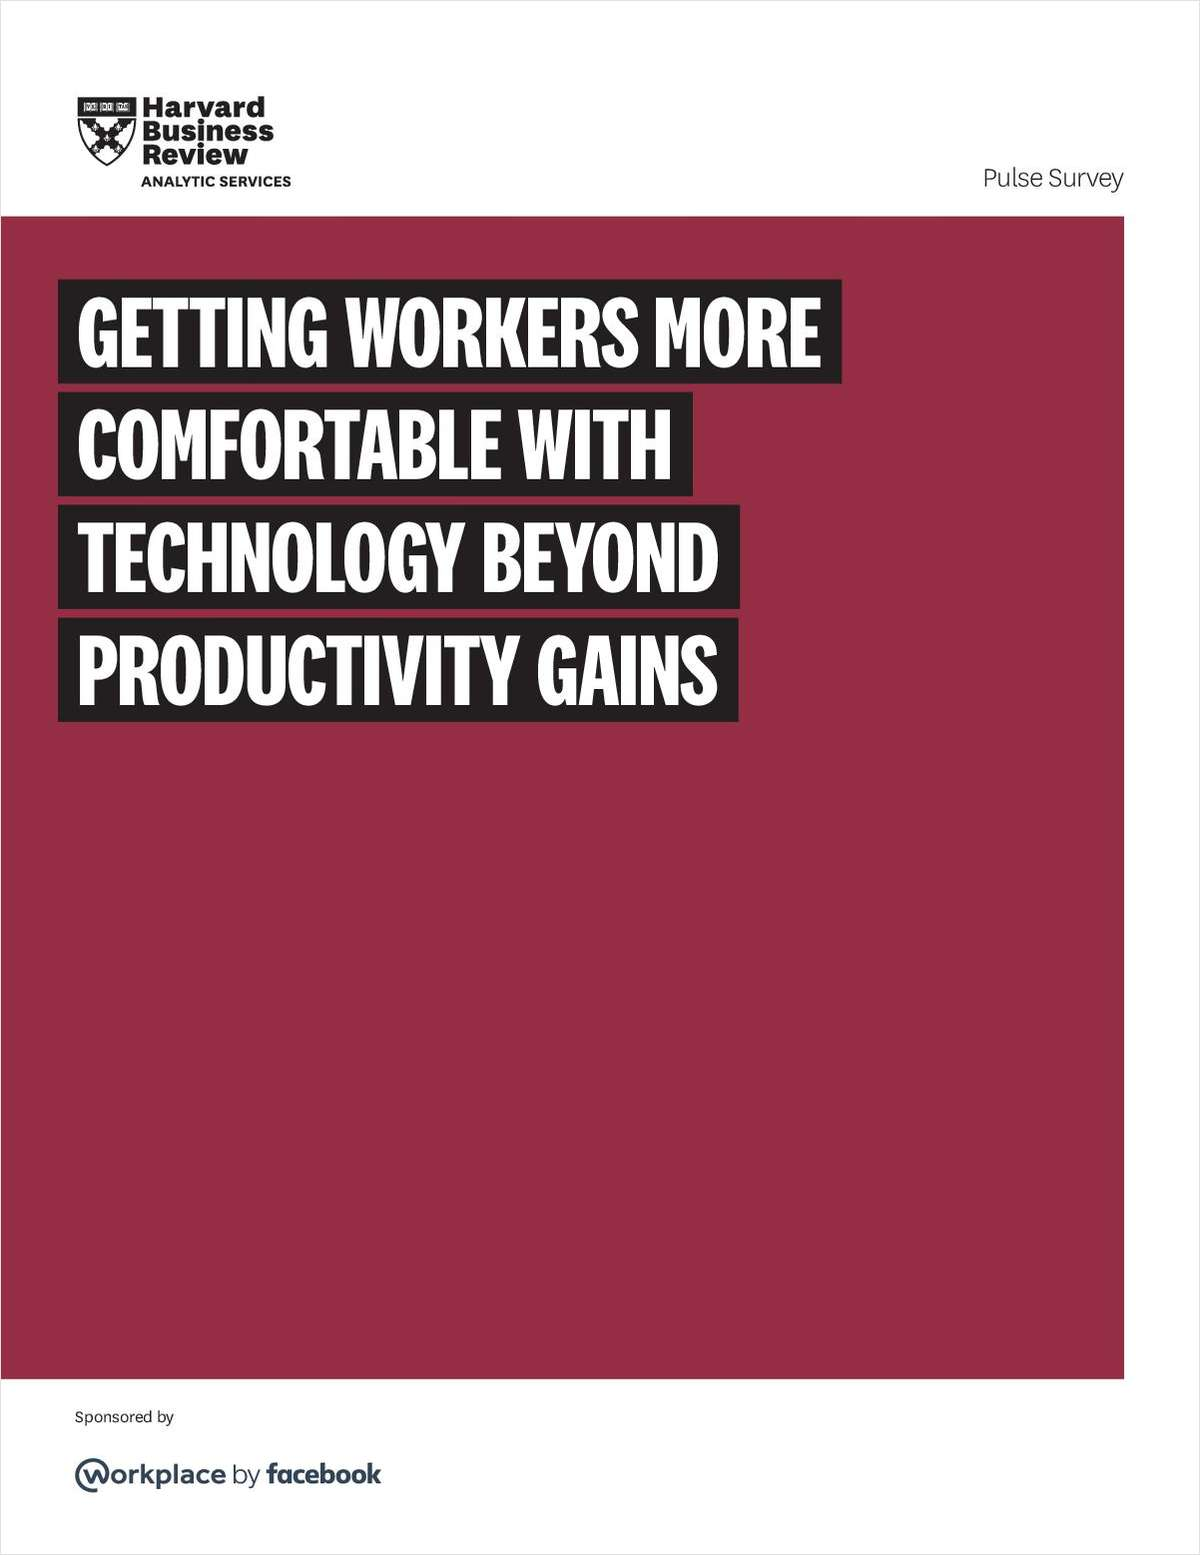 Getting Workers More Comfortable With Technology Beyond Productivity Gains